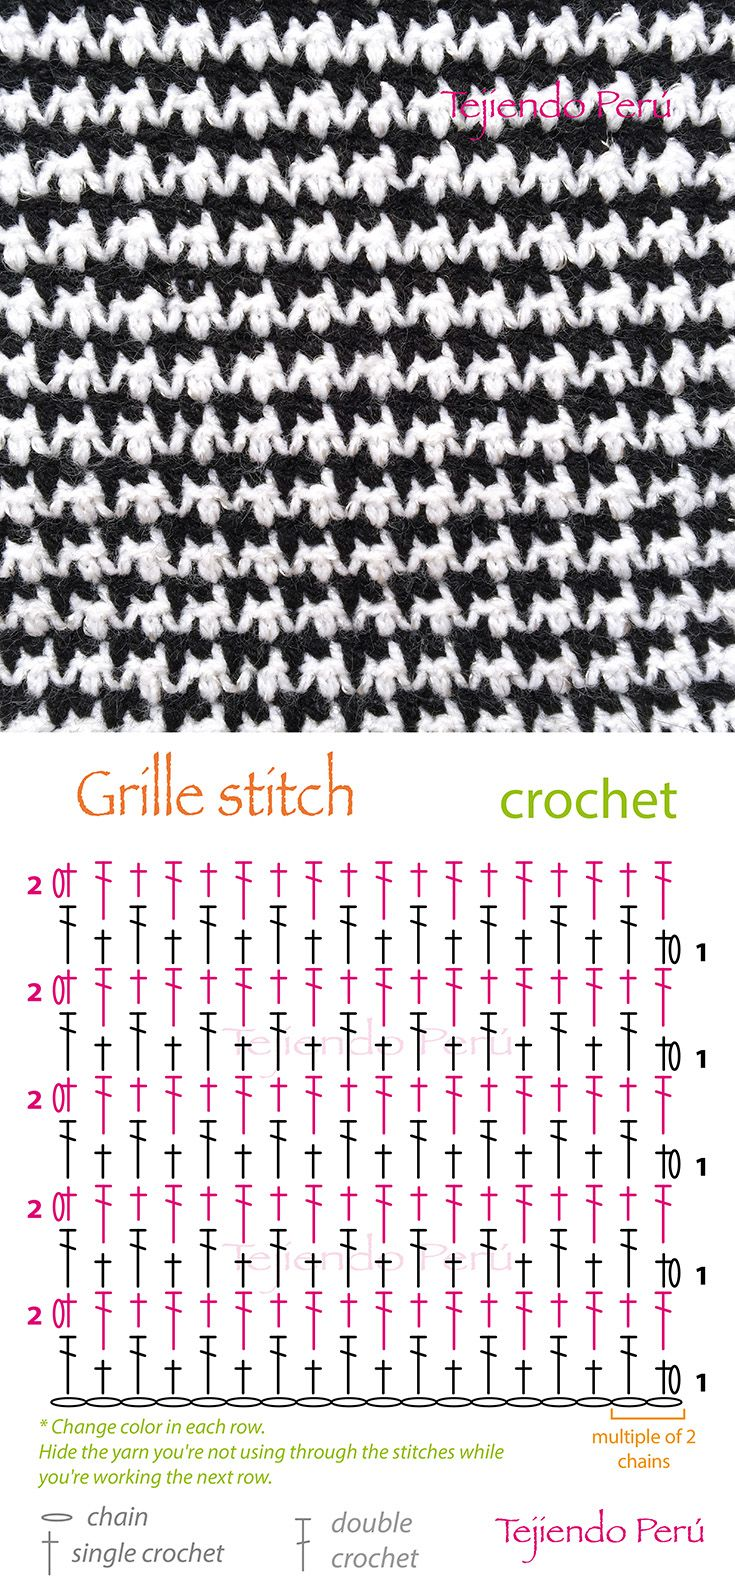 Crochet: grille stitch or pied de poule diagram (pattern or chart ...